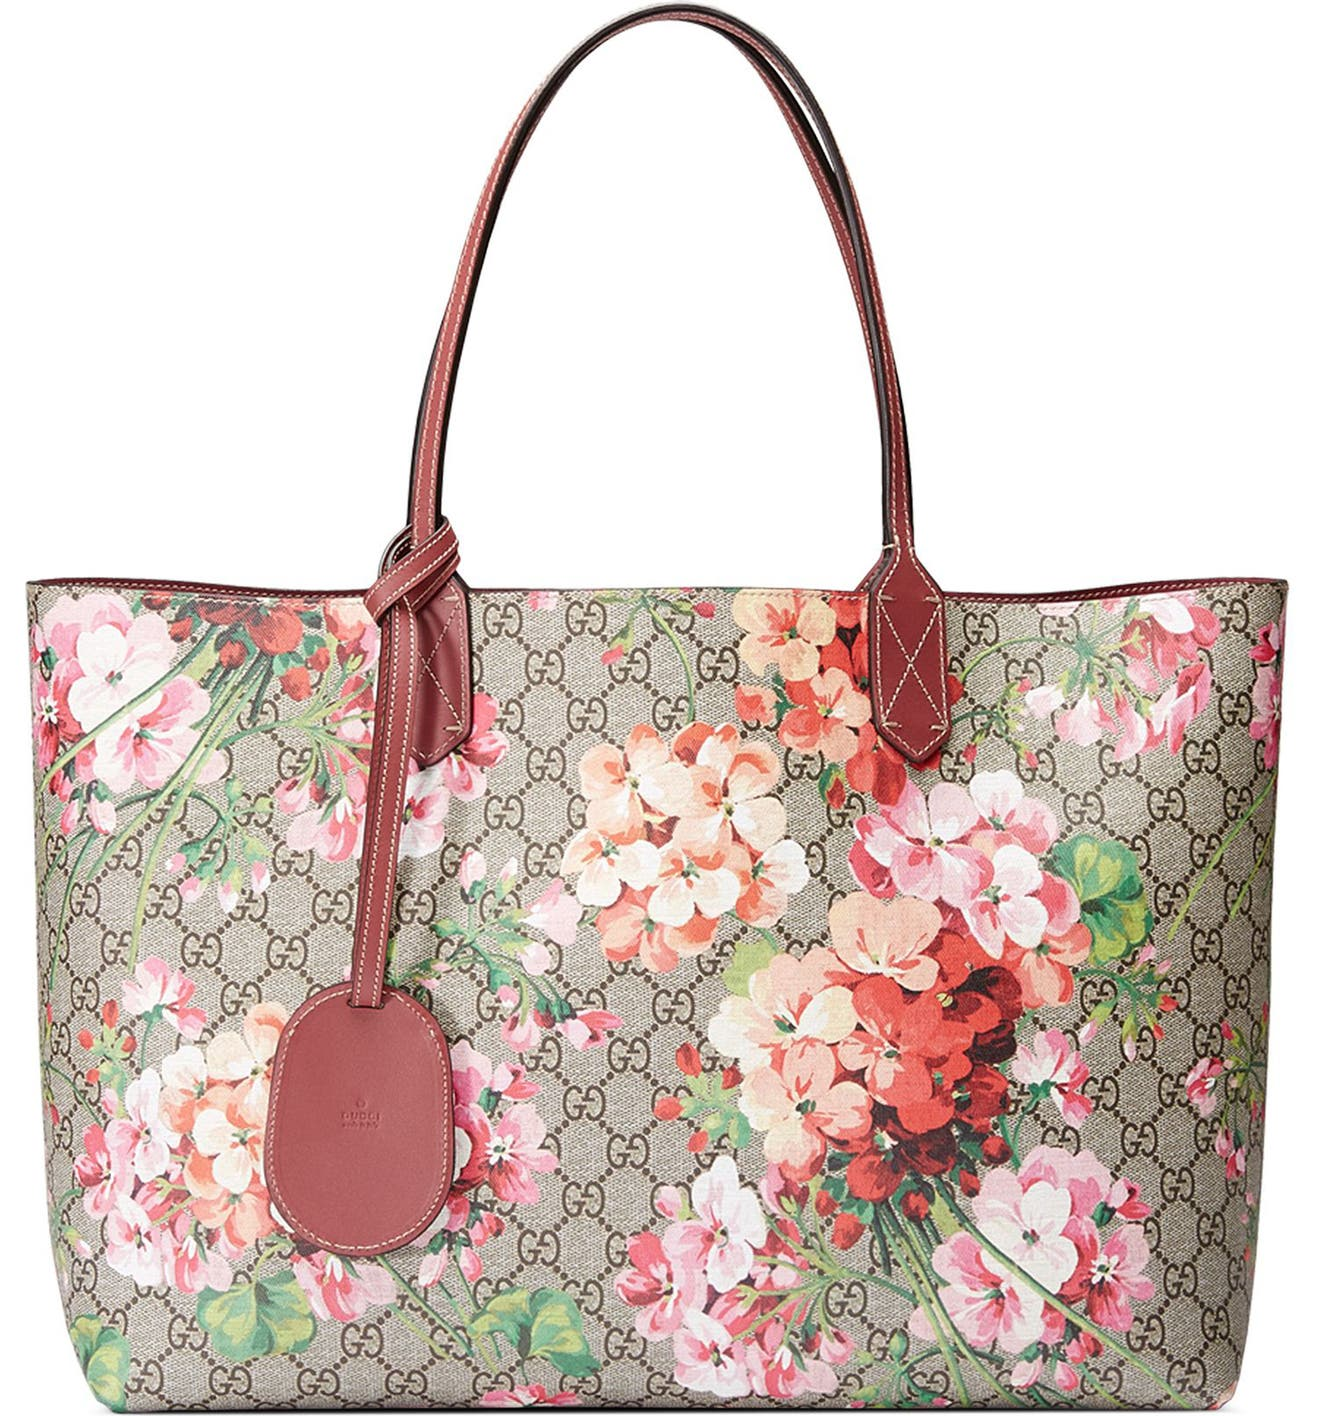 39a39becf813 Gucci Medium GG Blooms Reversible Canvas   Leather Tote